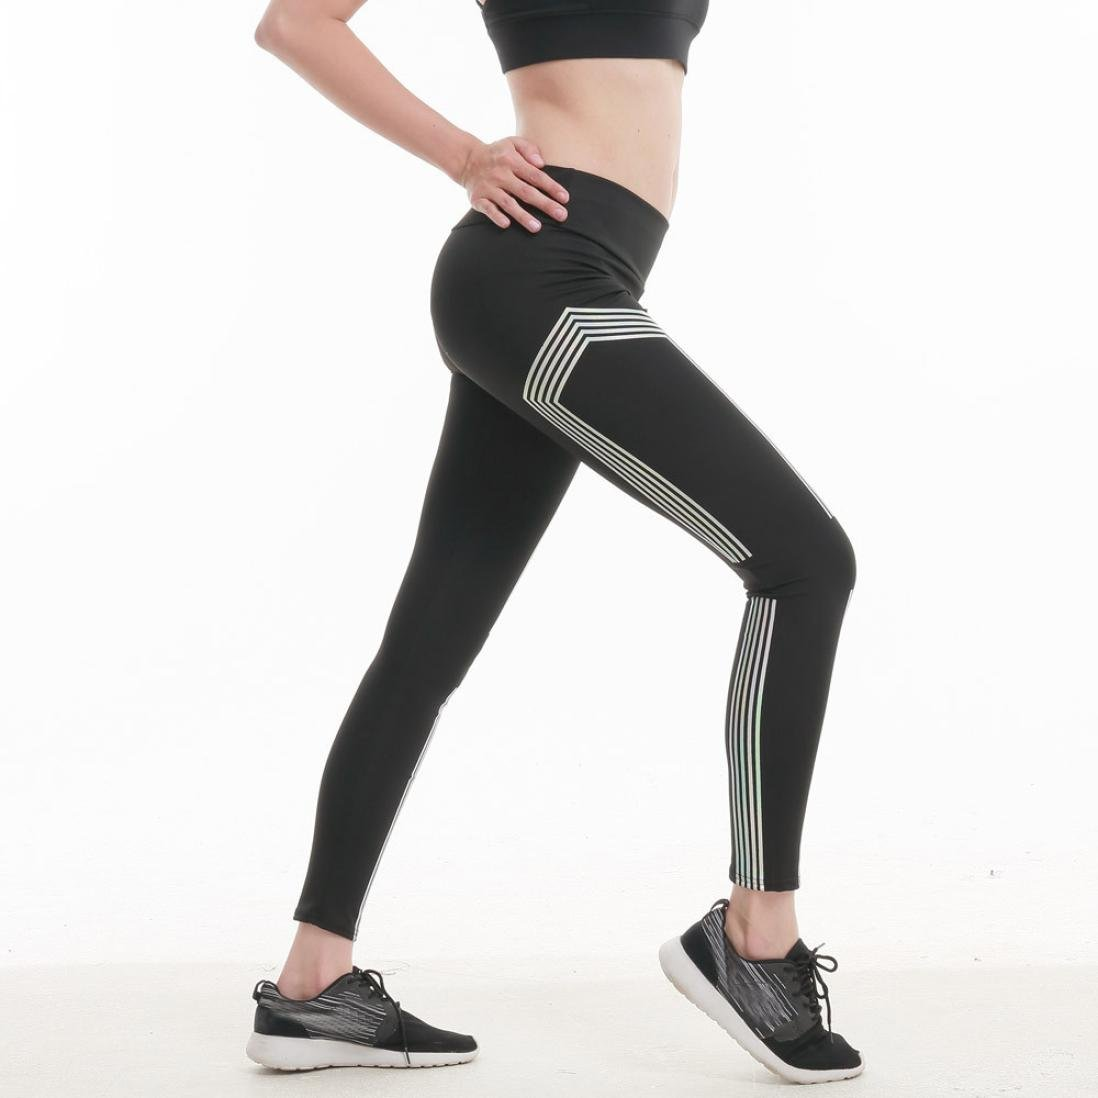 Pantalones Yoga Mujeres, ❤️Xinantime Polainas de fitness de yoga de cintura alta de mujer Running Gym Stretch Sports Pants Pantalones Brillará: Amazon.es: ...